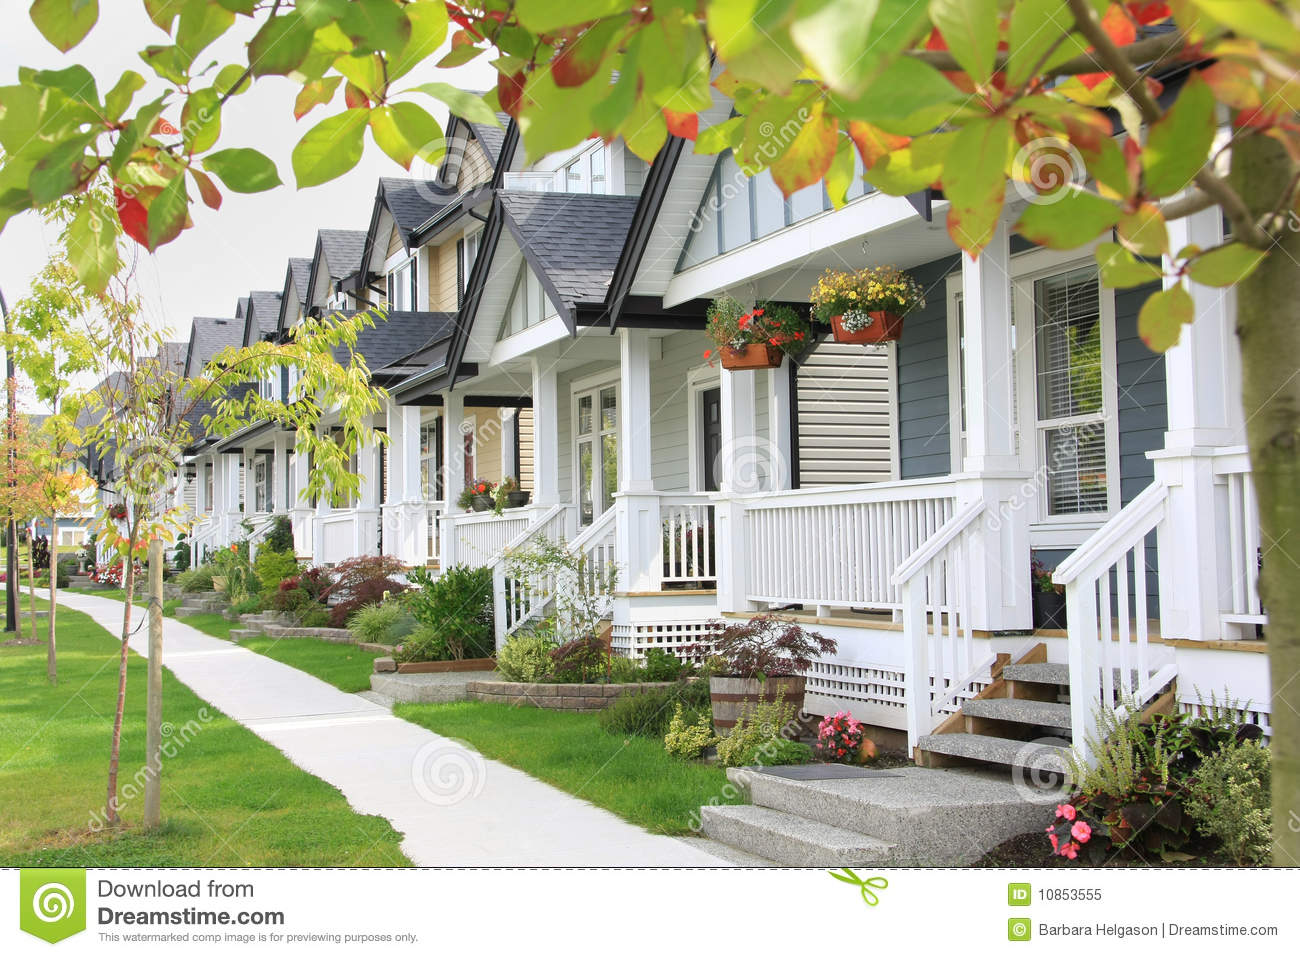 Cohousing dissertation abstracts on cohousing